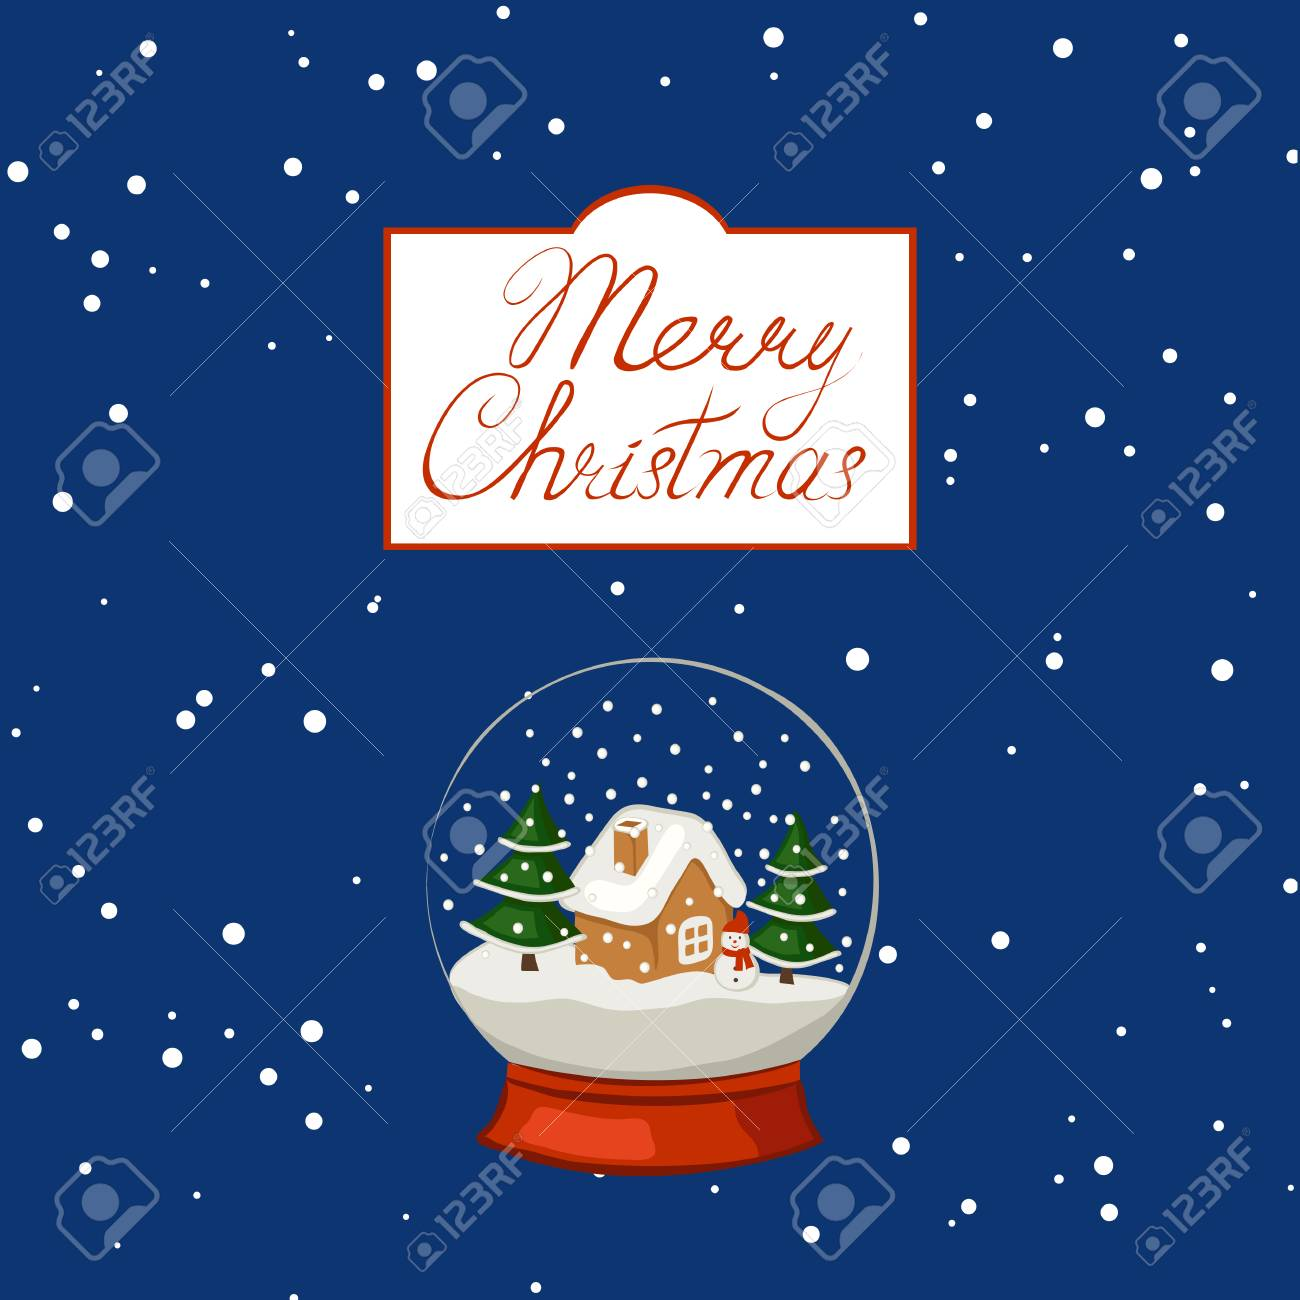 Merry Christmas Poster Banner Greeting Card Snow Globe Against